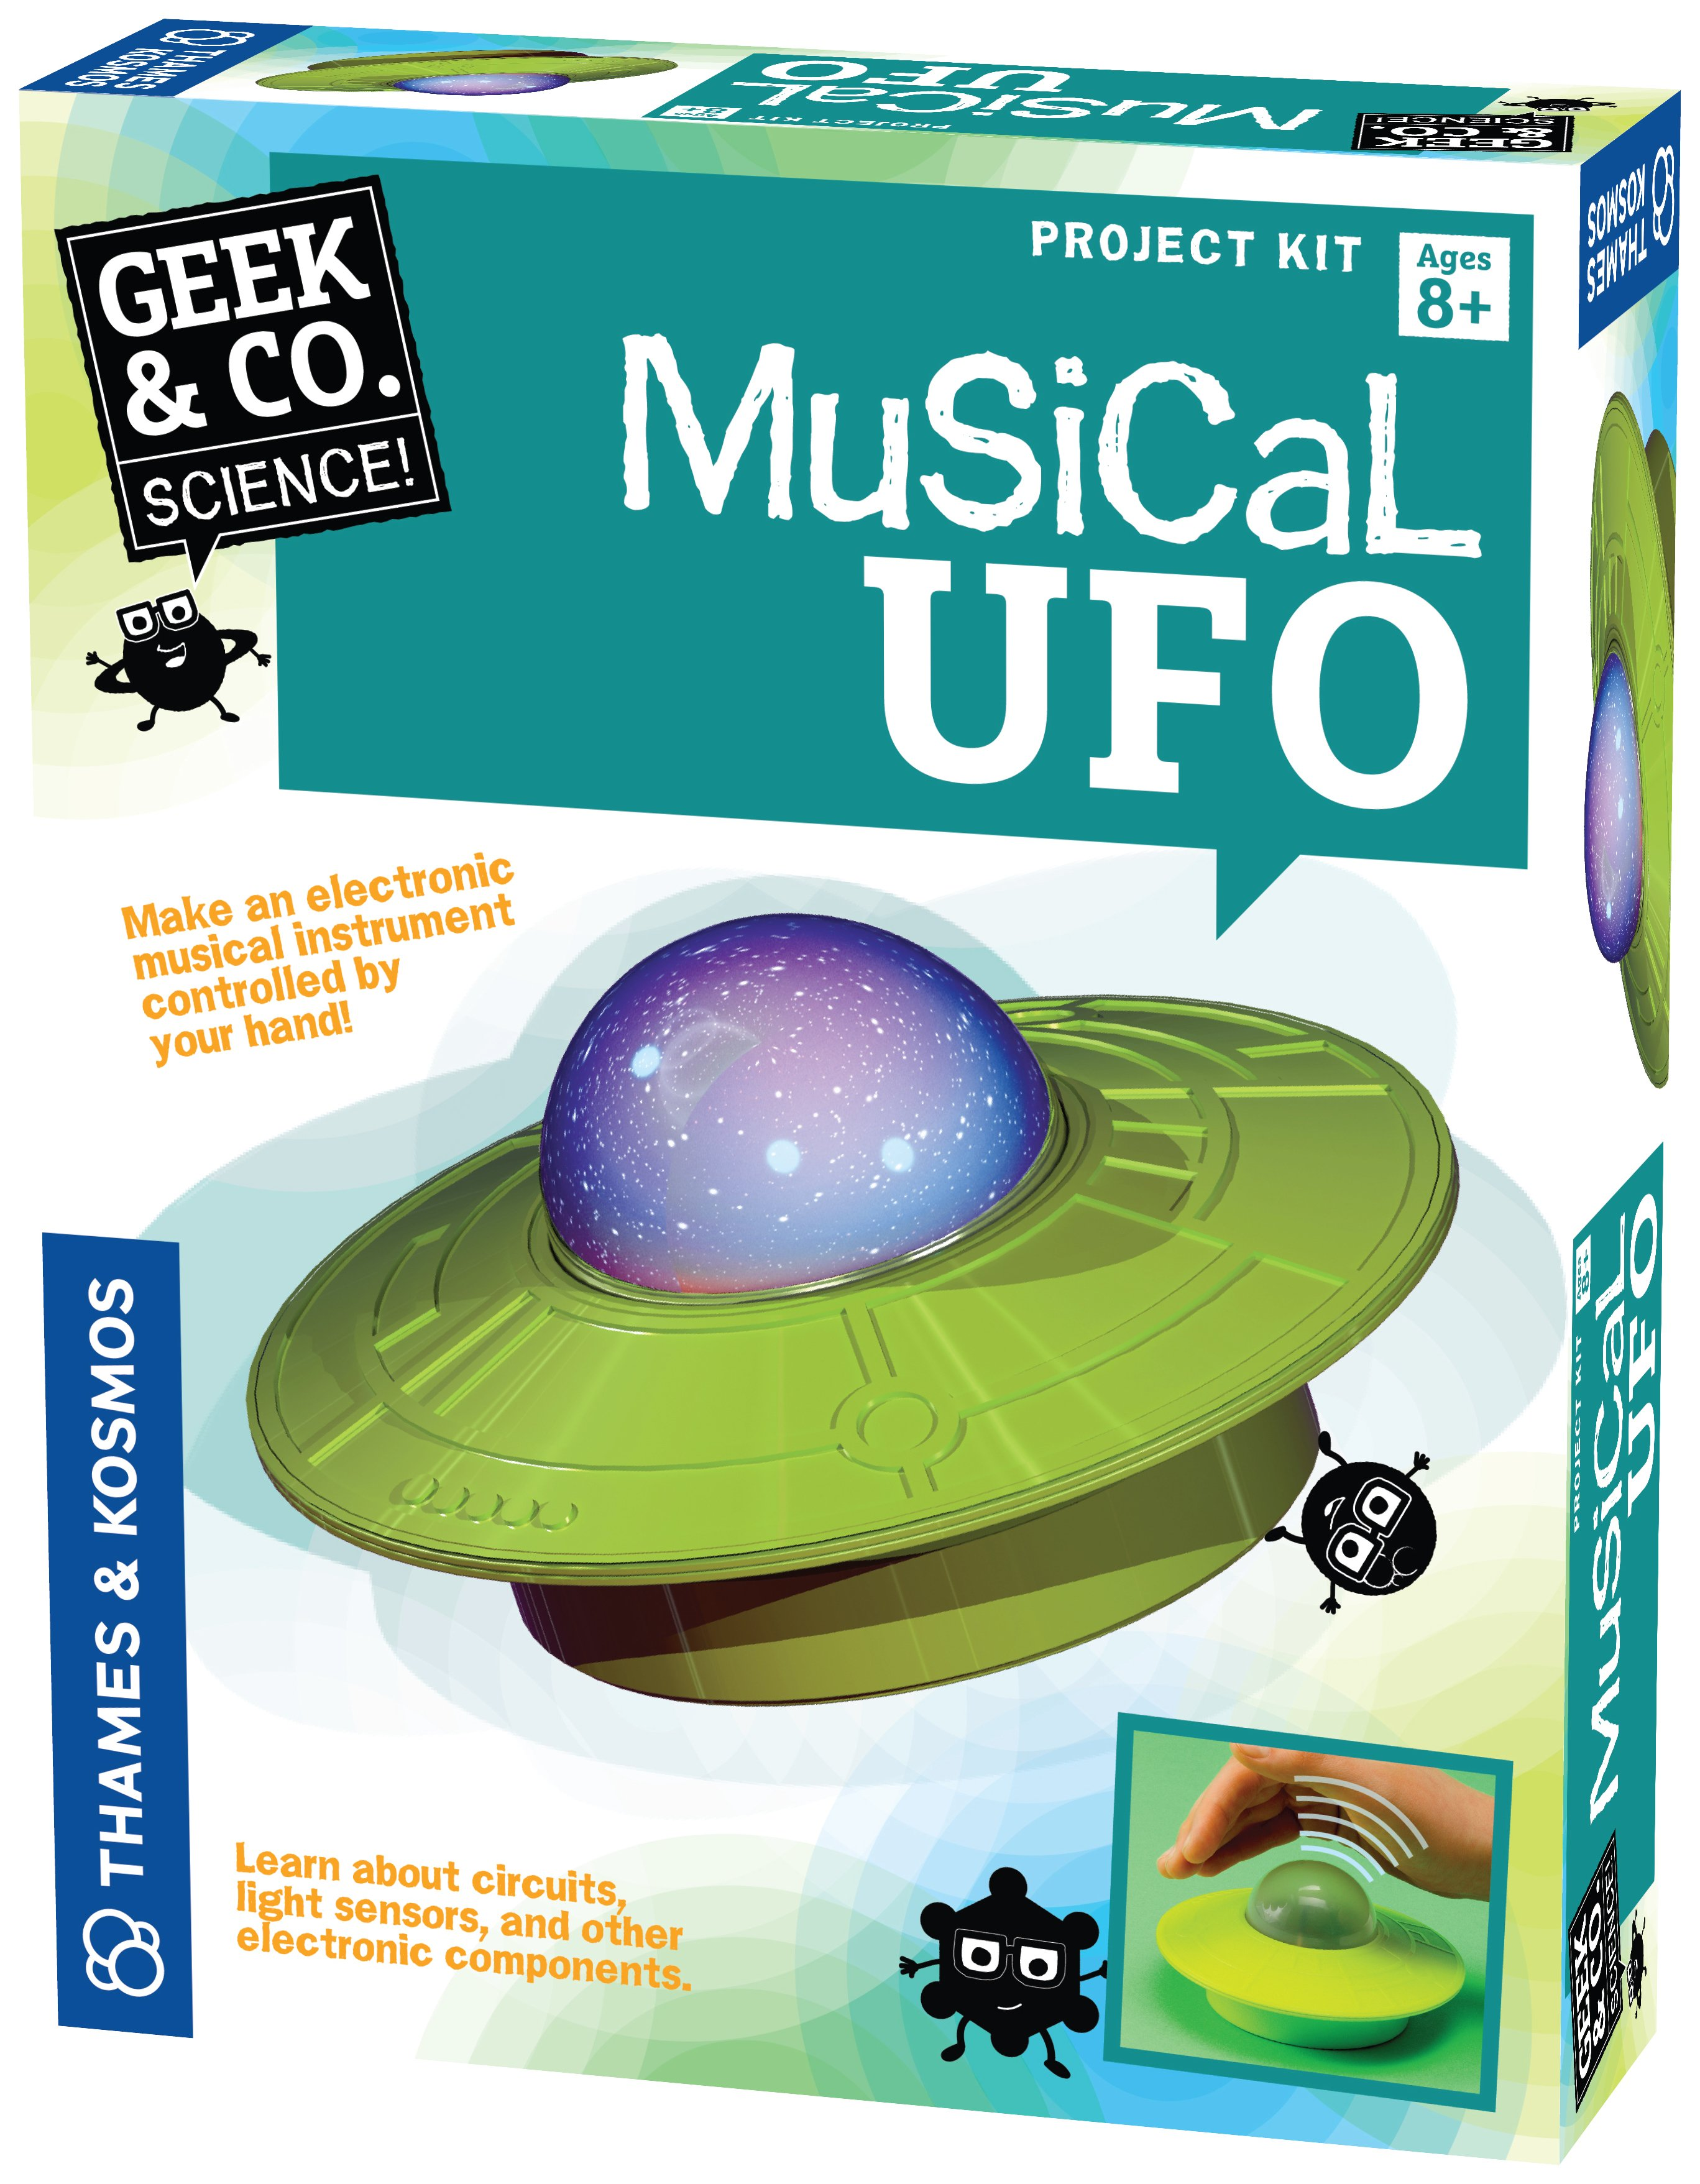 Image of Musical UFO Construction Set.